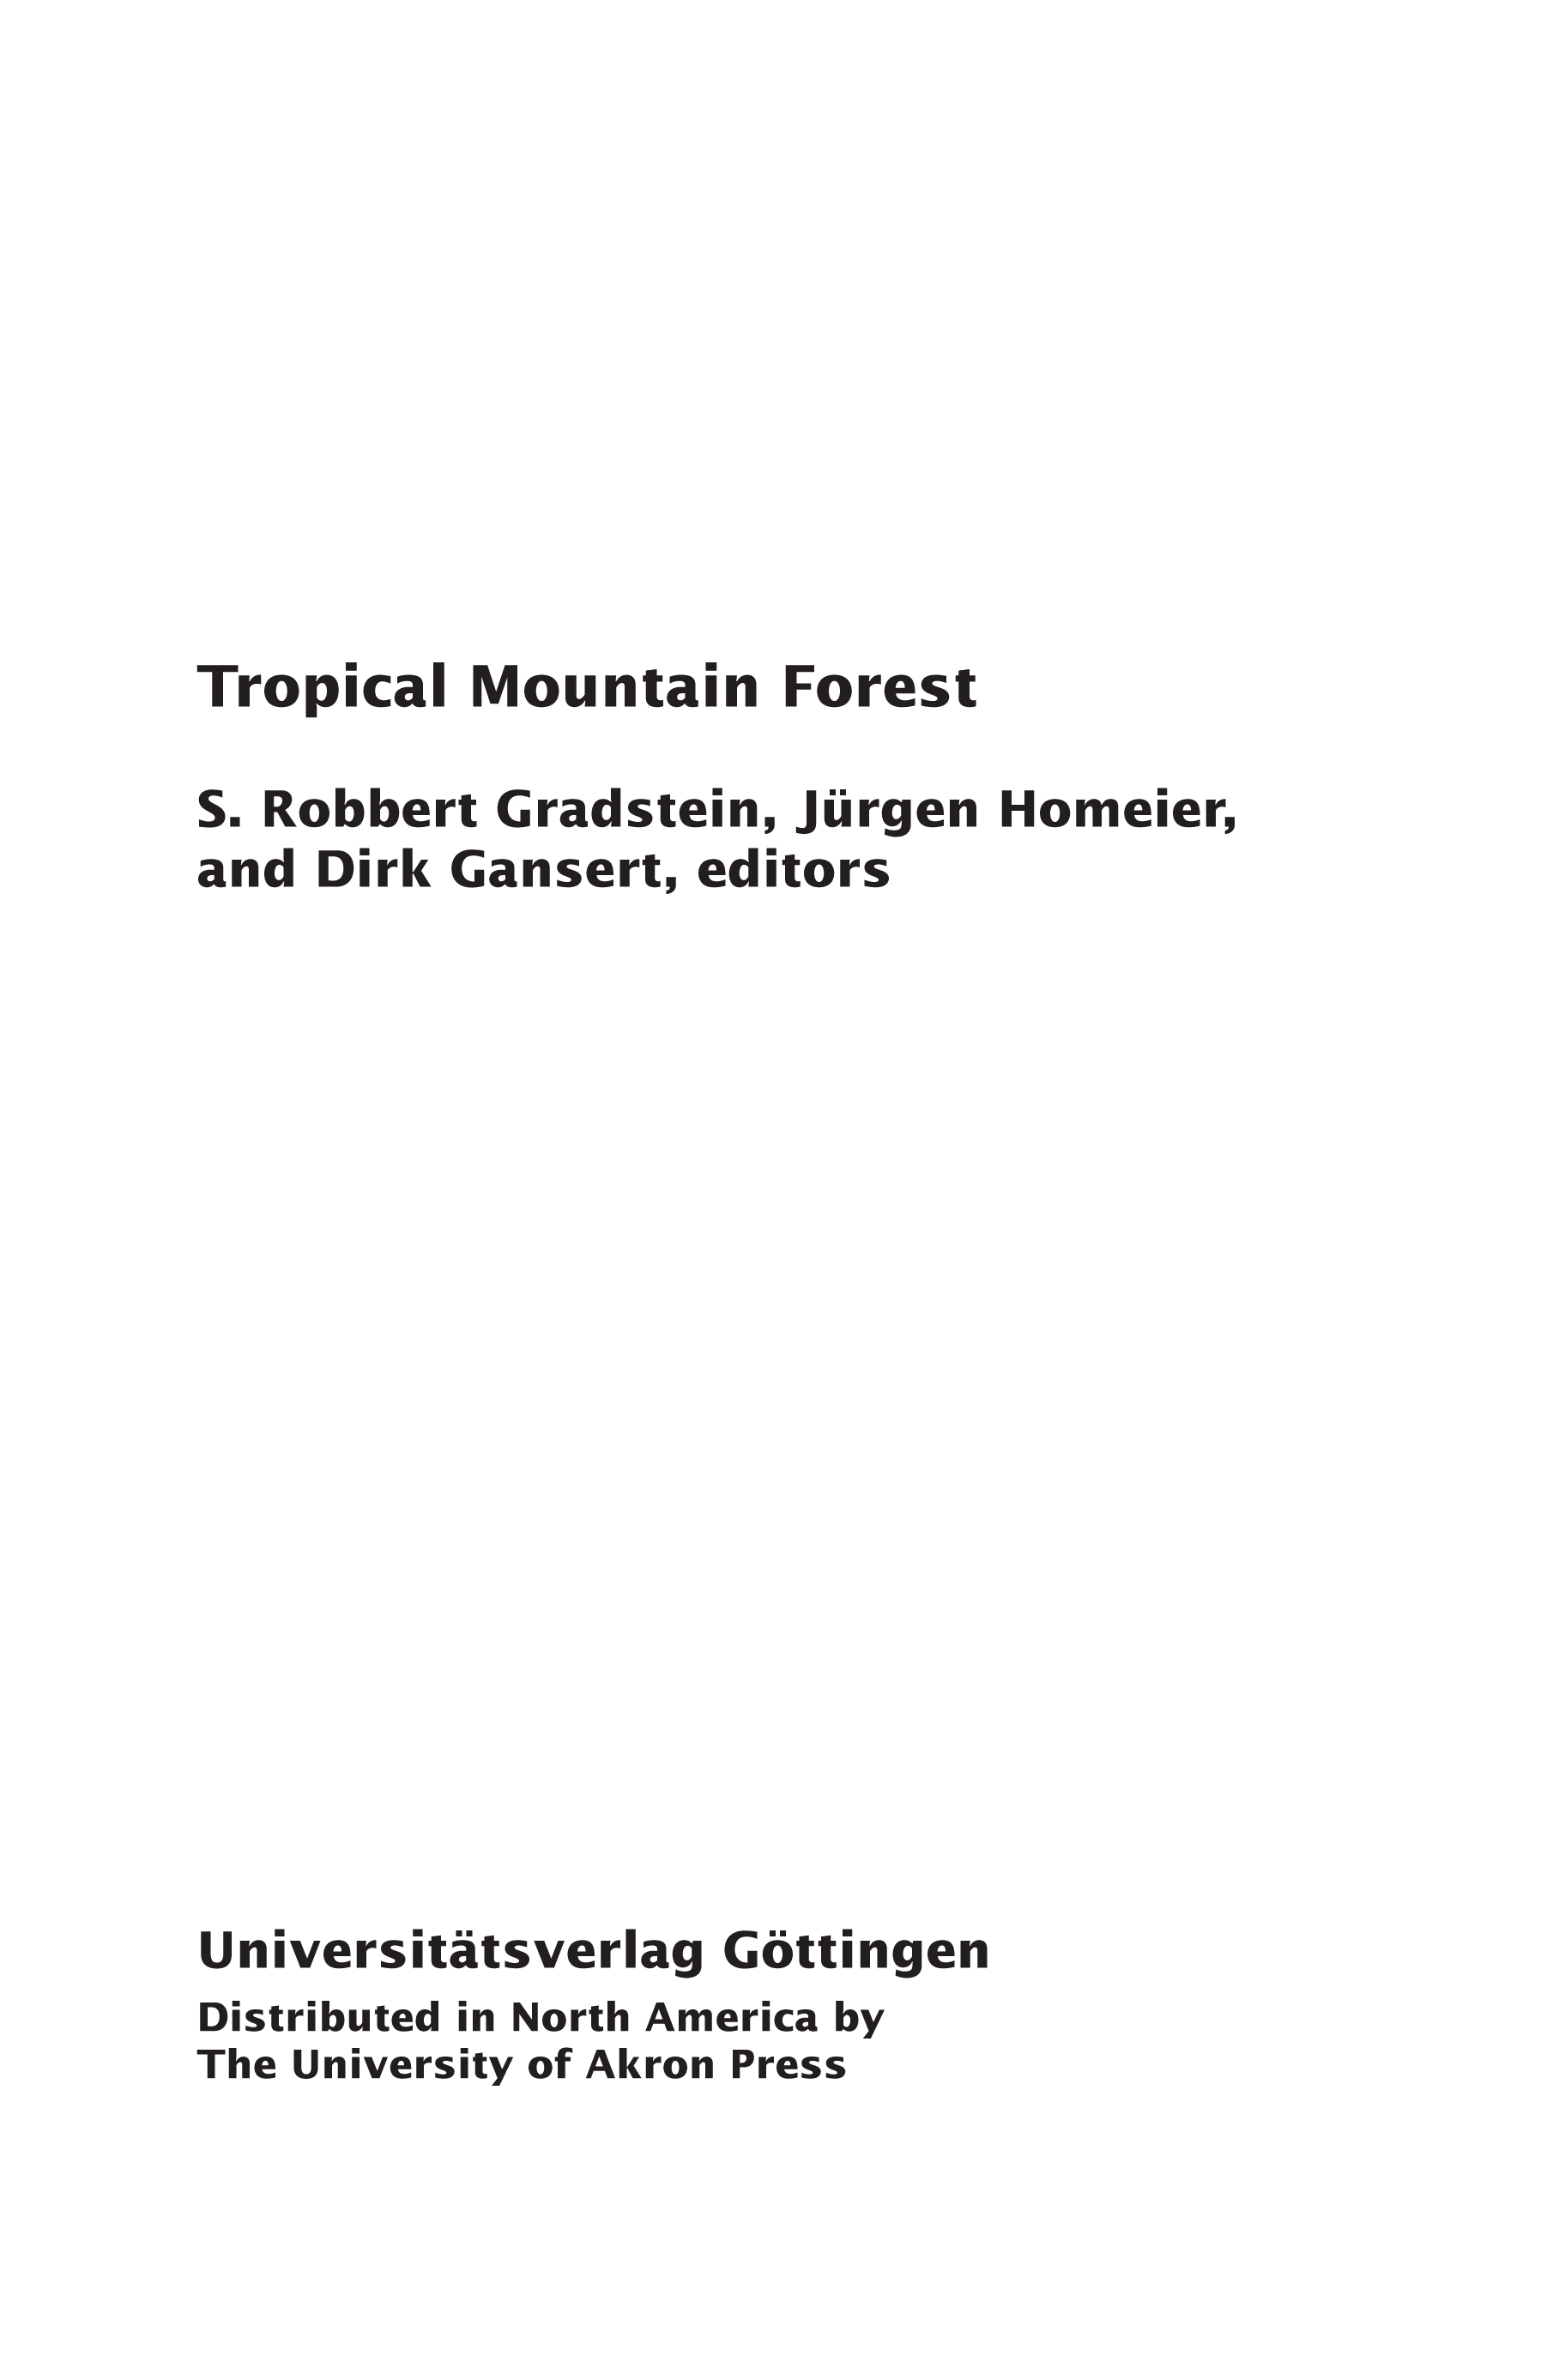 Tropical Mountain Forest: Patterns and Processes in a Biodiversity Hotspot